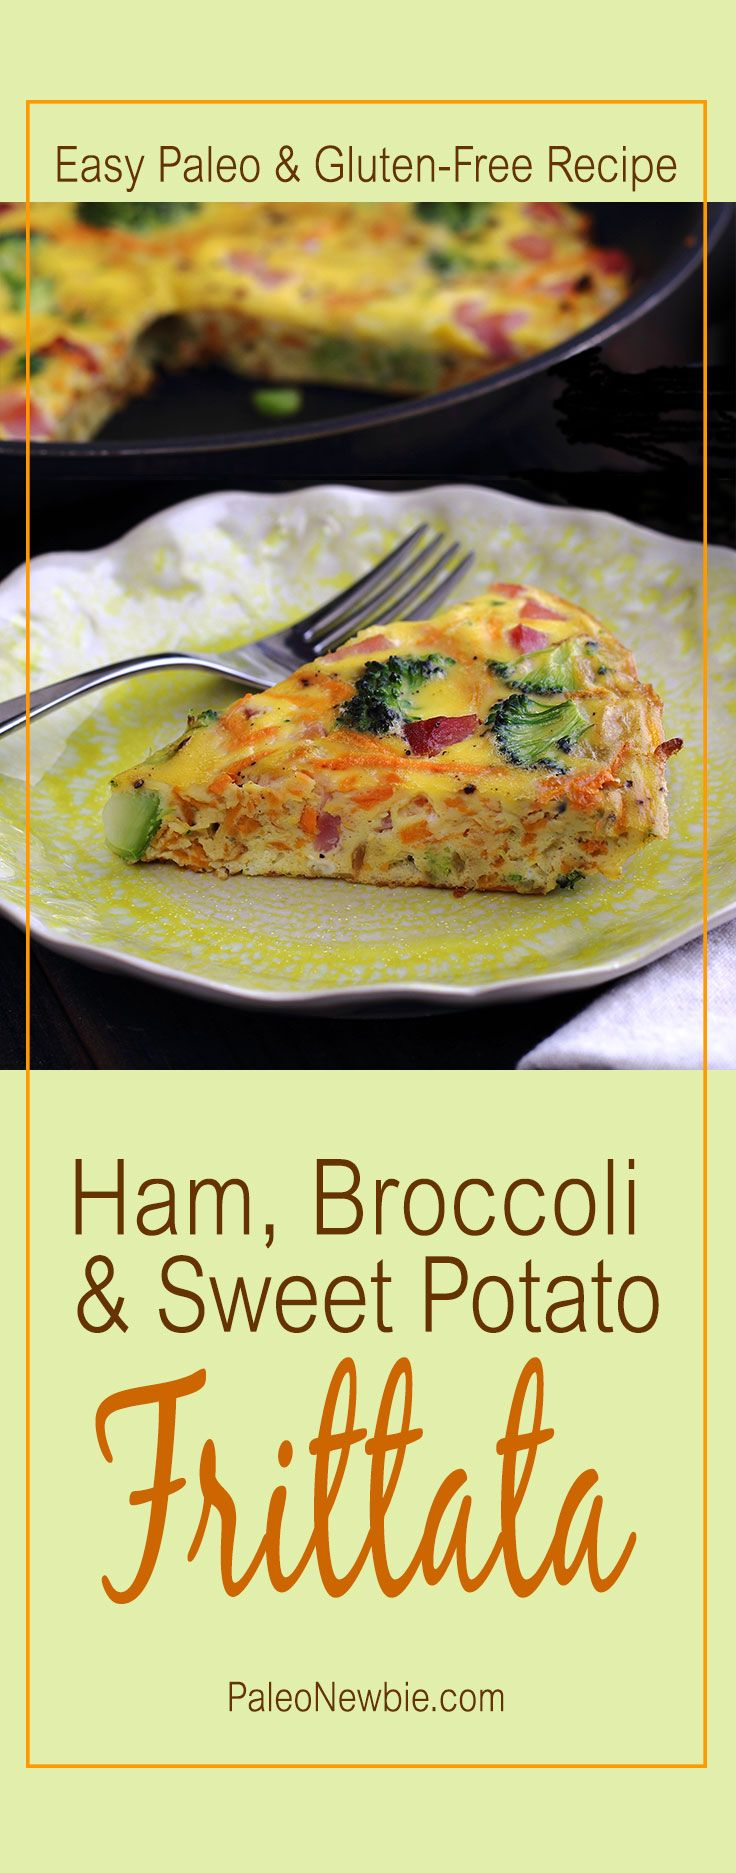 Easy-to-make, fully-loaded, paleo Power Breakfast Frittata. Packed ...